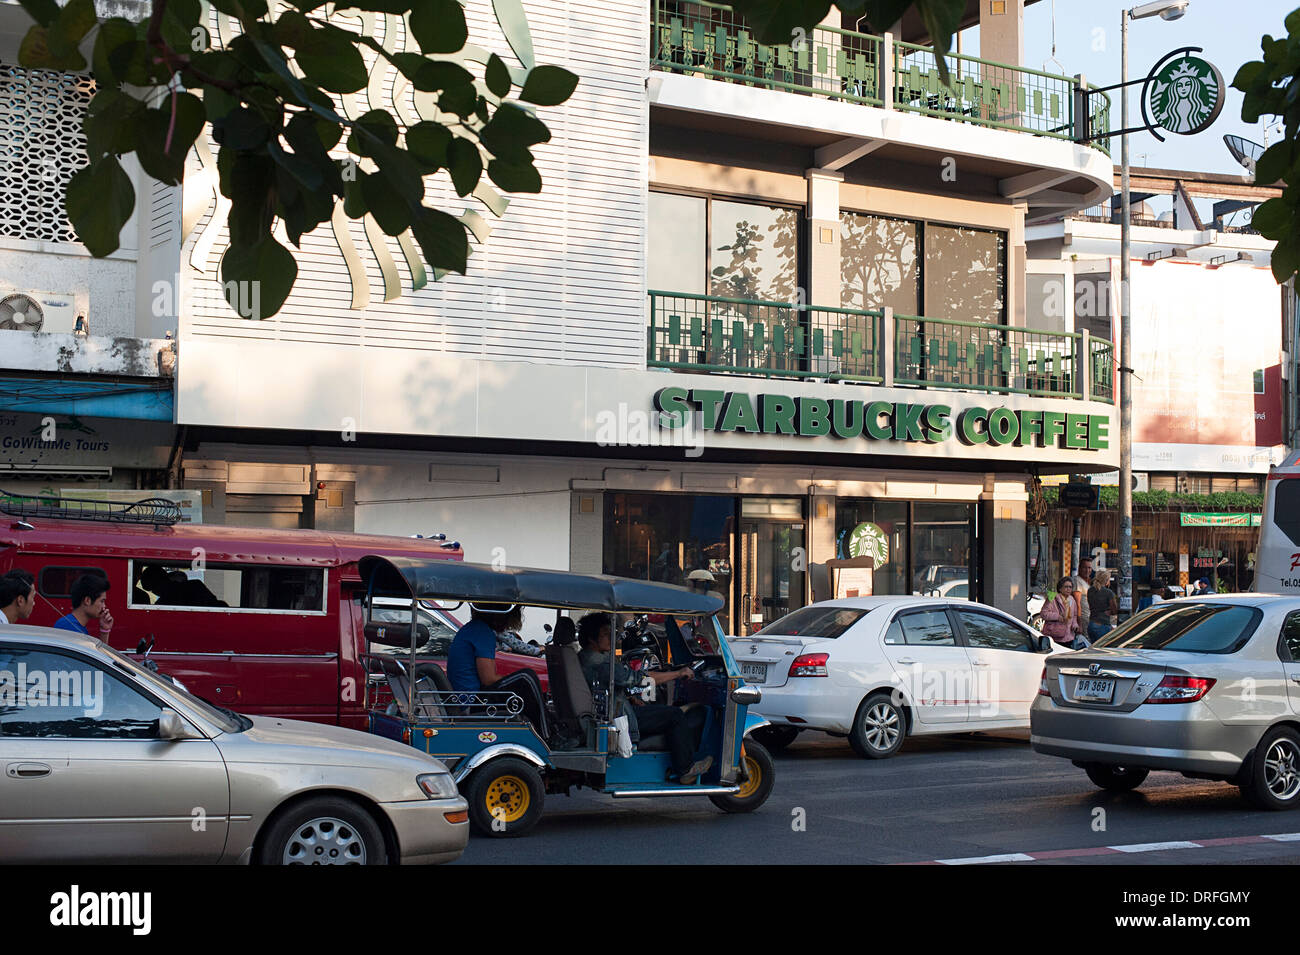 Urban busy city road with Starbucks Coffee shop and big sign. Chiang Mai, Thailand - Stock Image